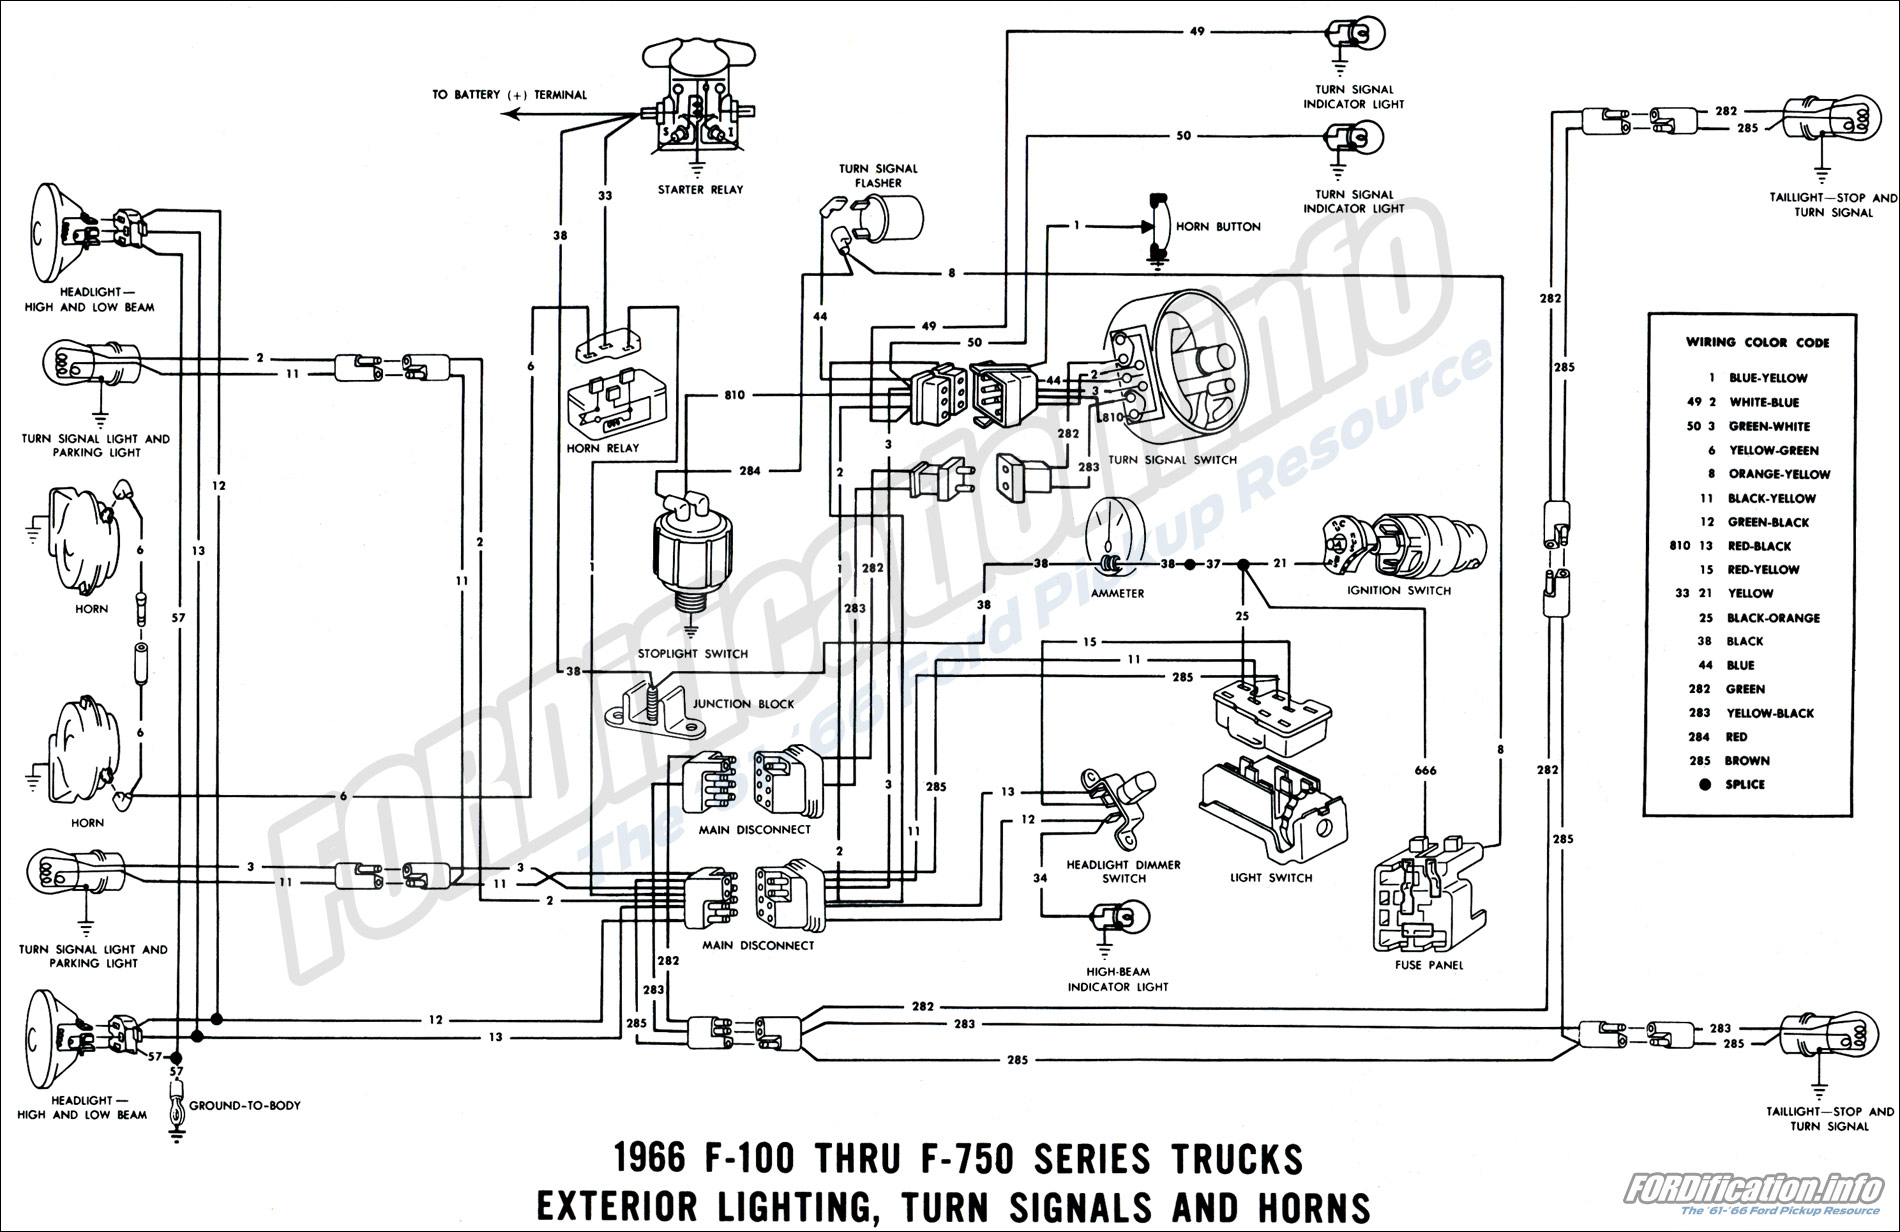 1967 ford f100 turn signal wiring diagram - wiring diagrams auto fund-join  - fund-join.moskitofree.it  moskitofree.it